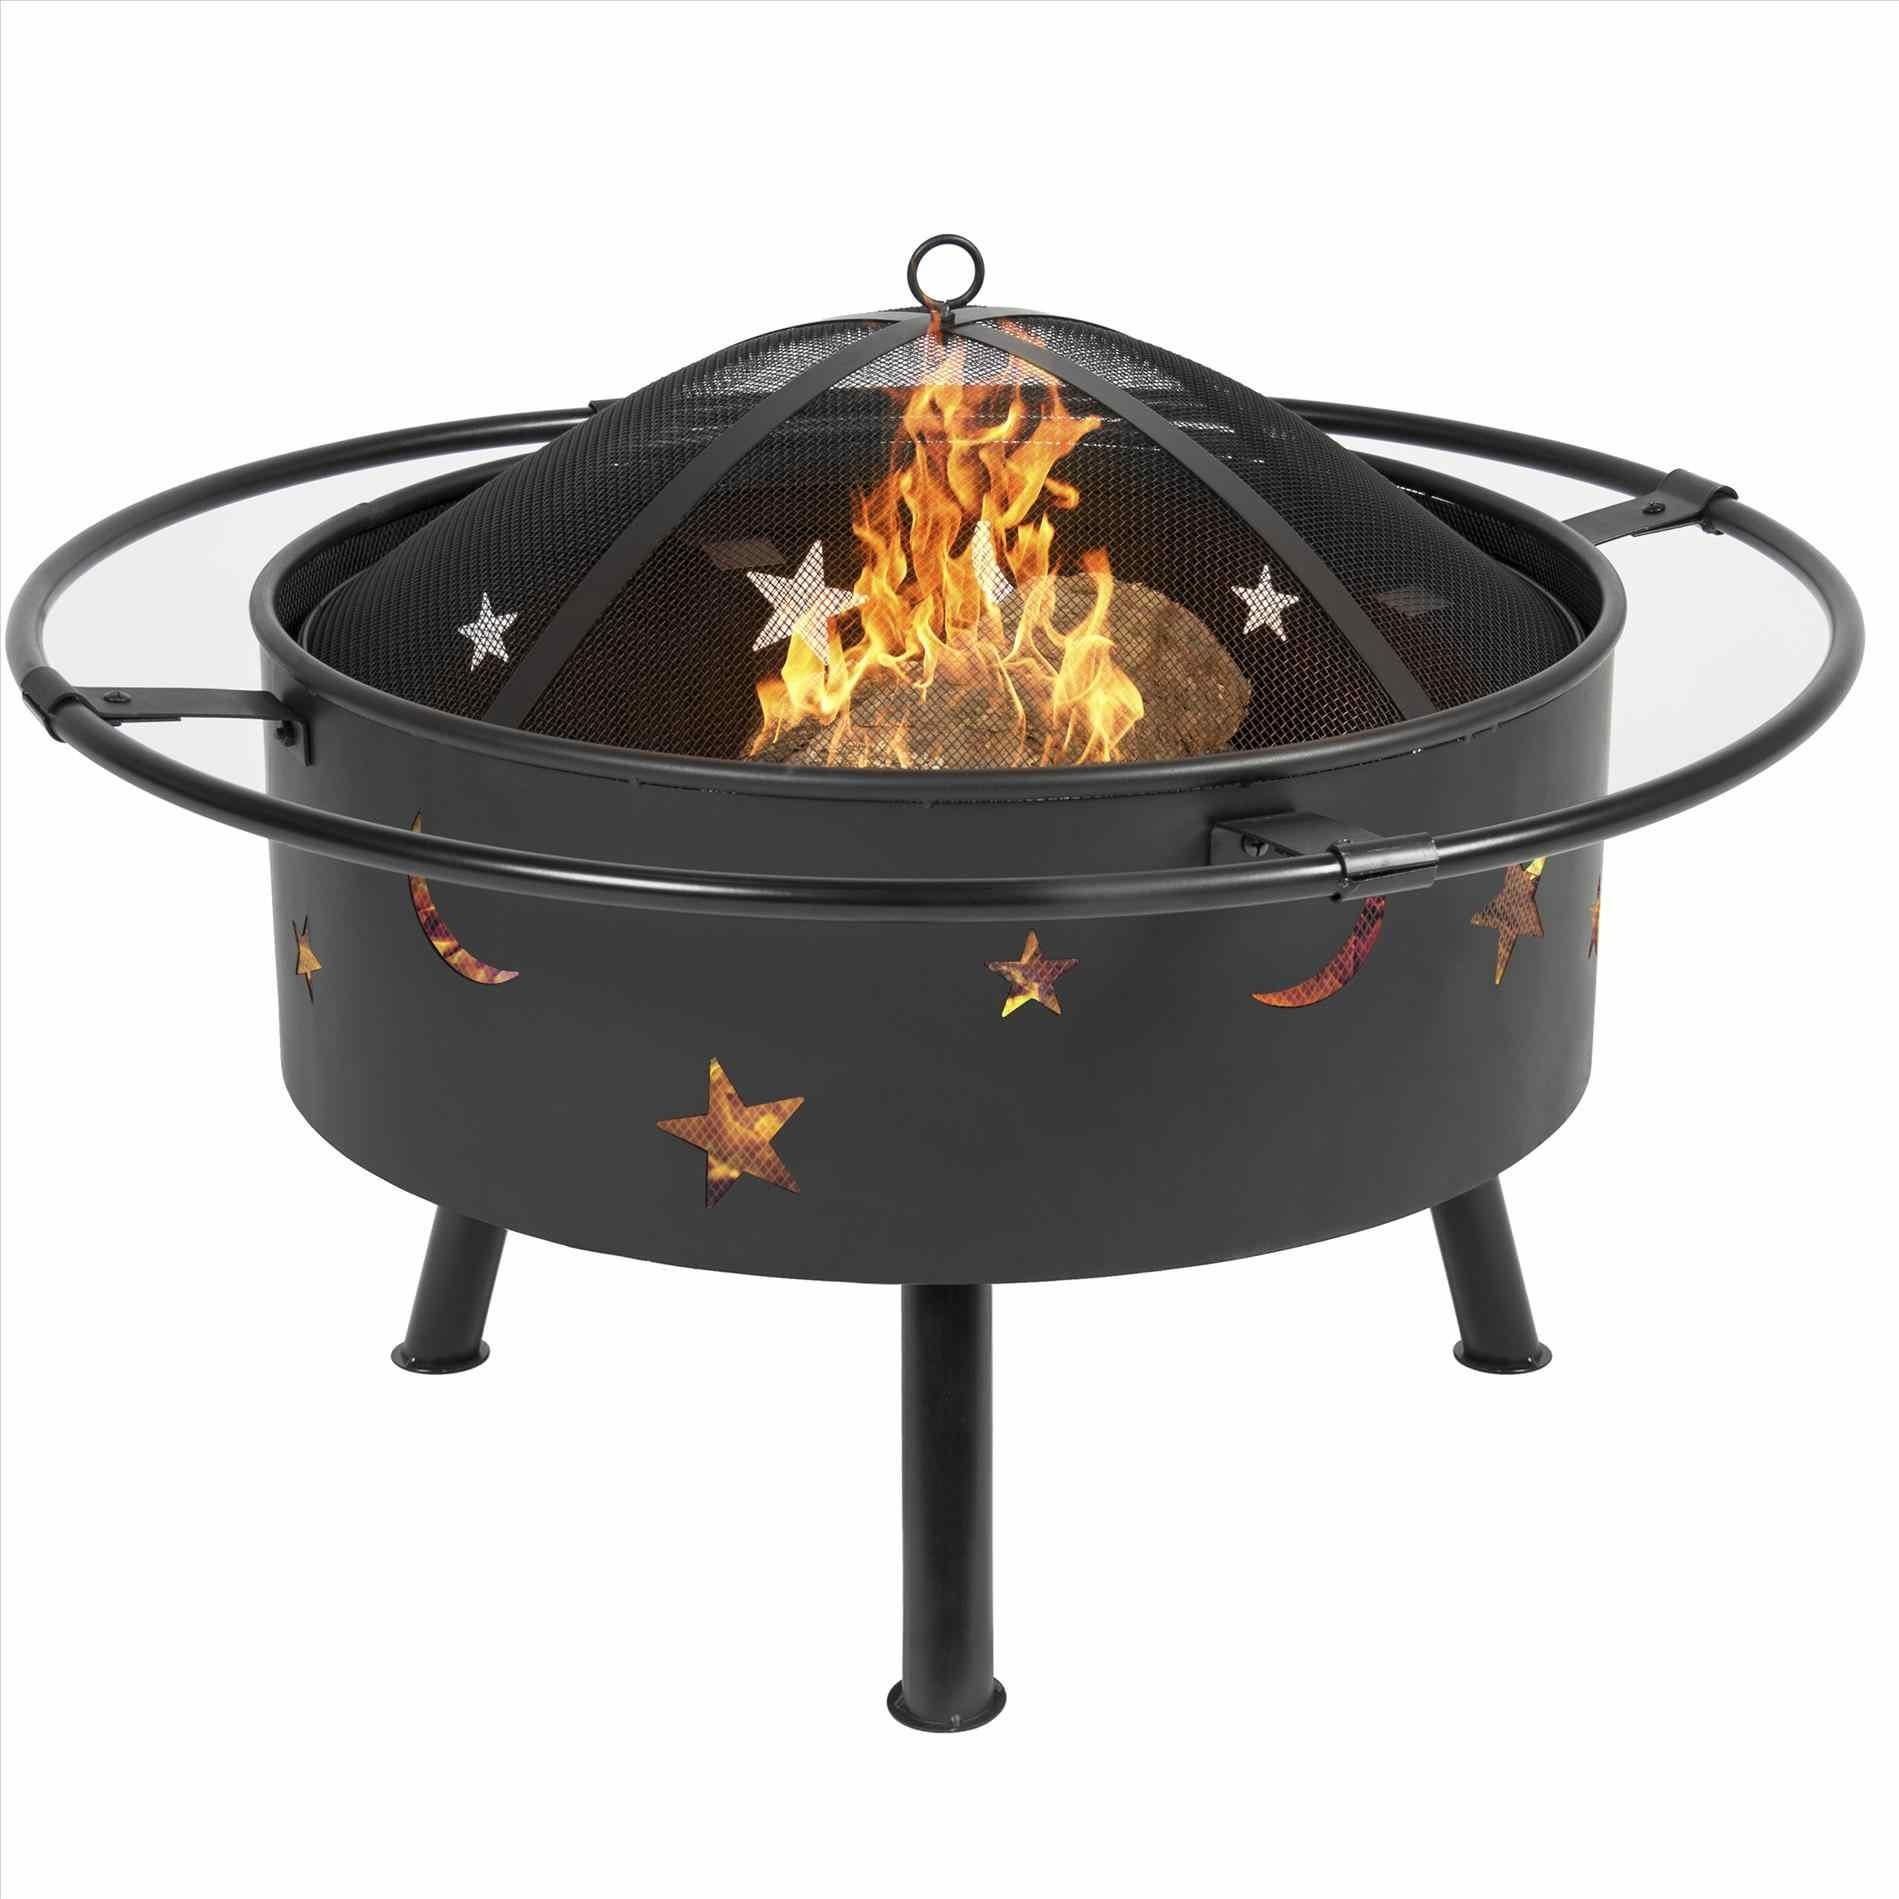 Diy Network Blog Made Fire Portable Patio Fireplace Pit